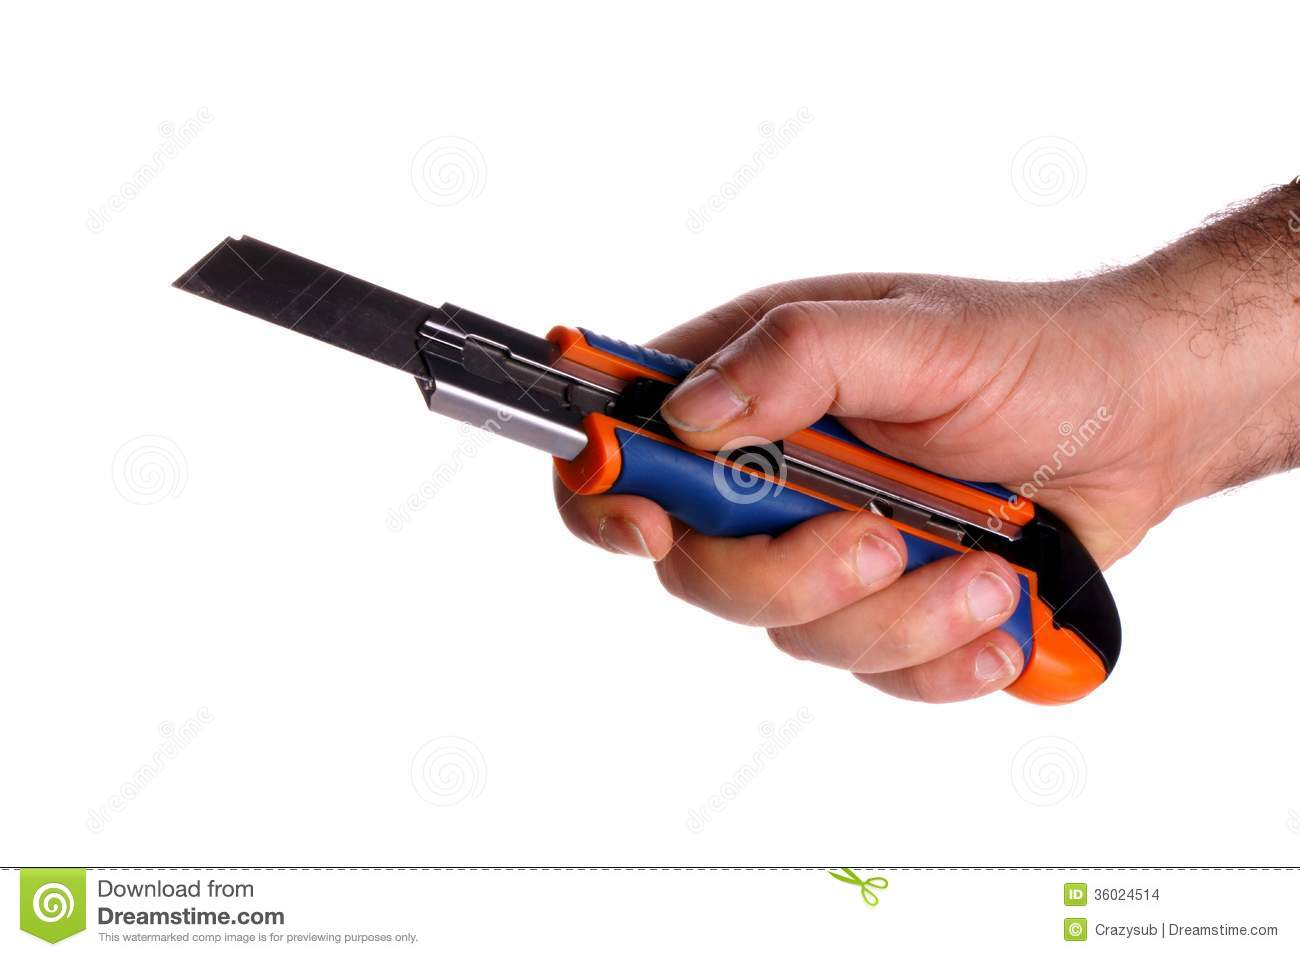 Cutter Hand Holding Knife on Z Metal For Carpet